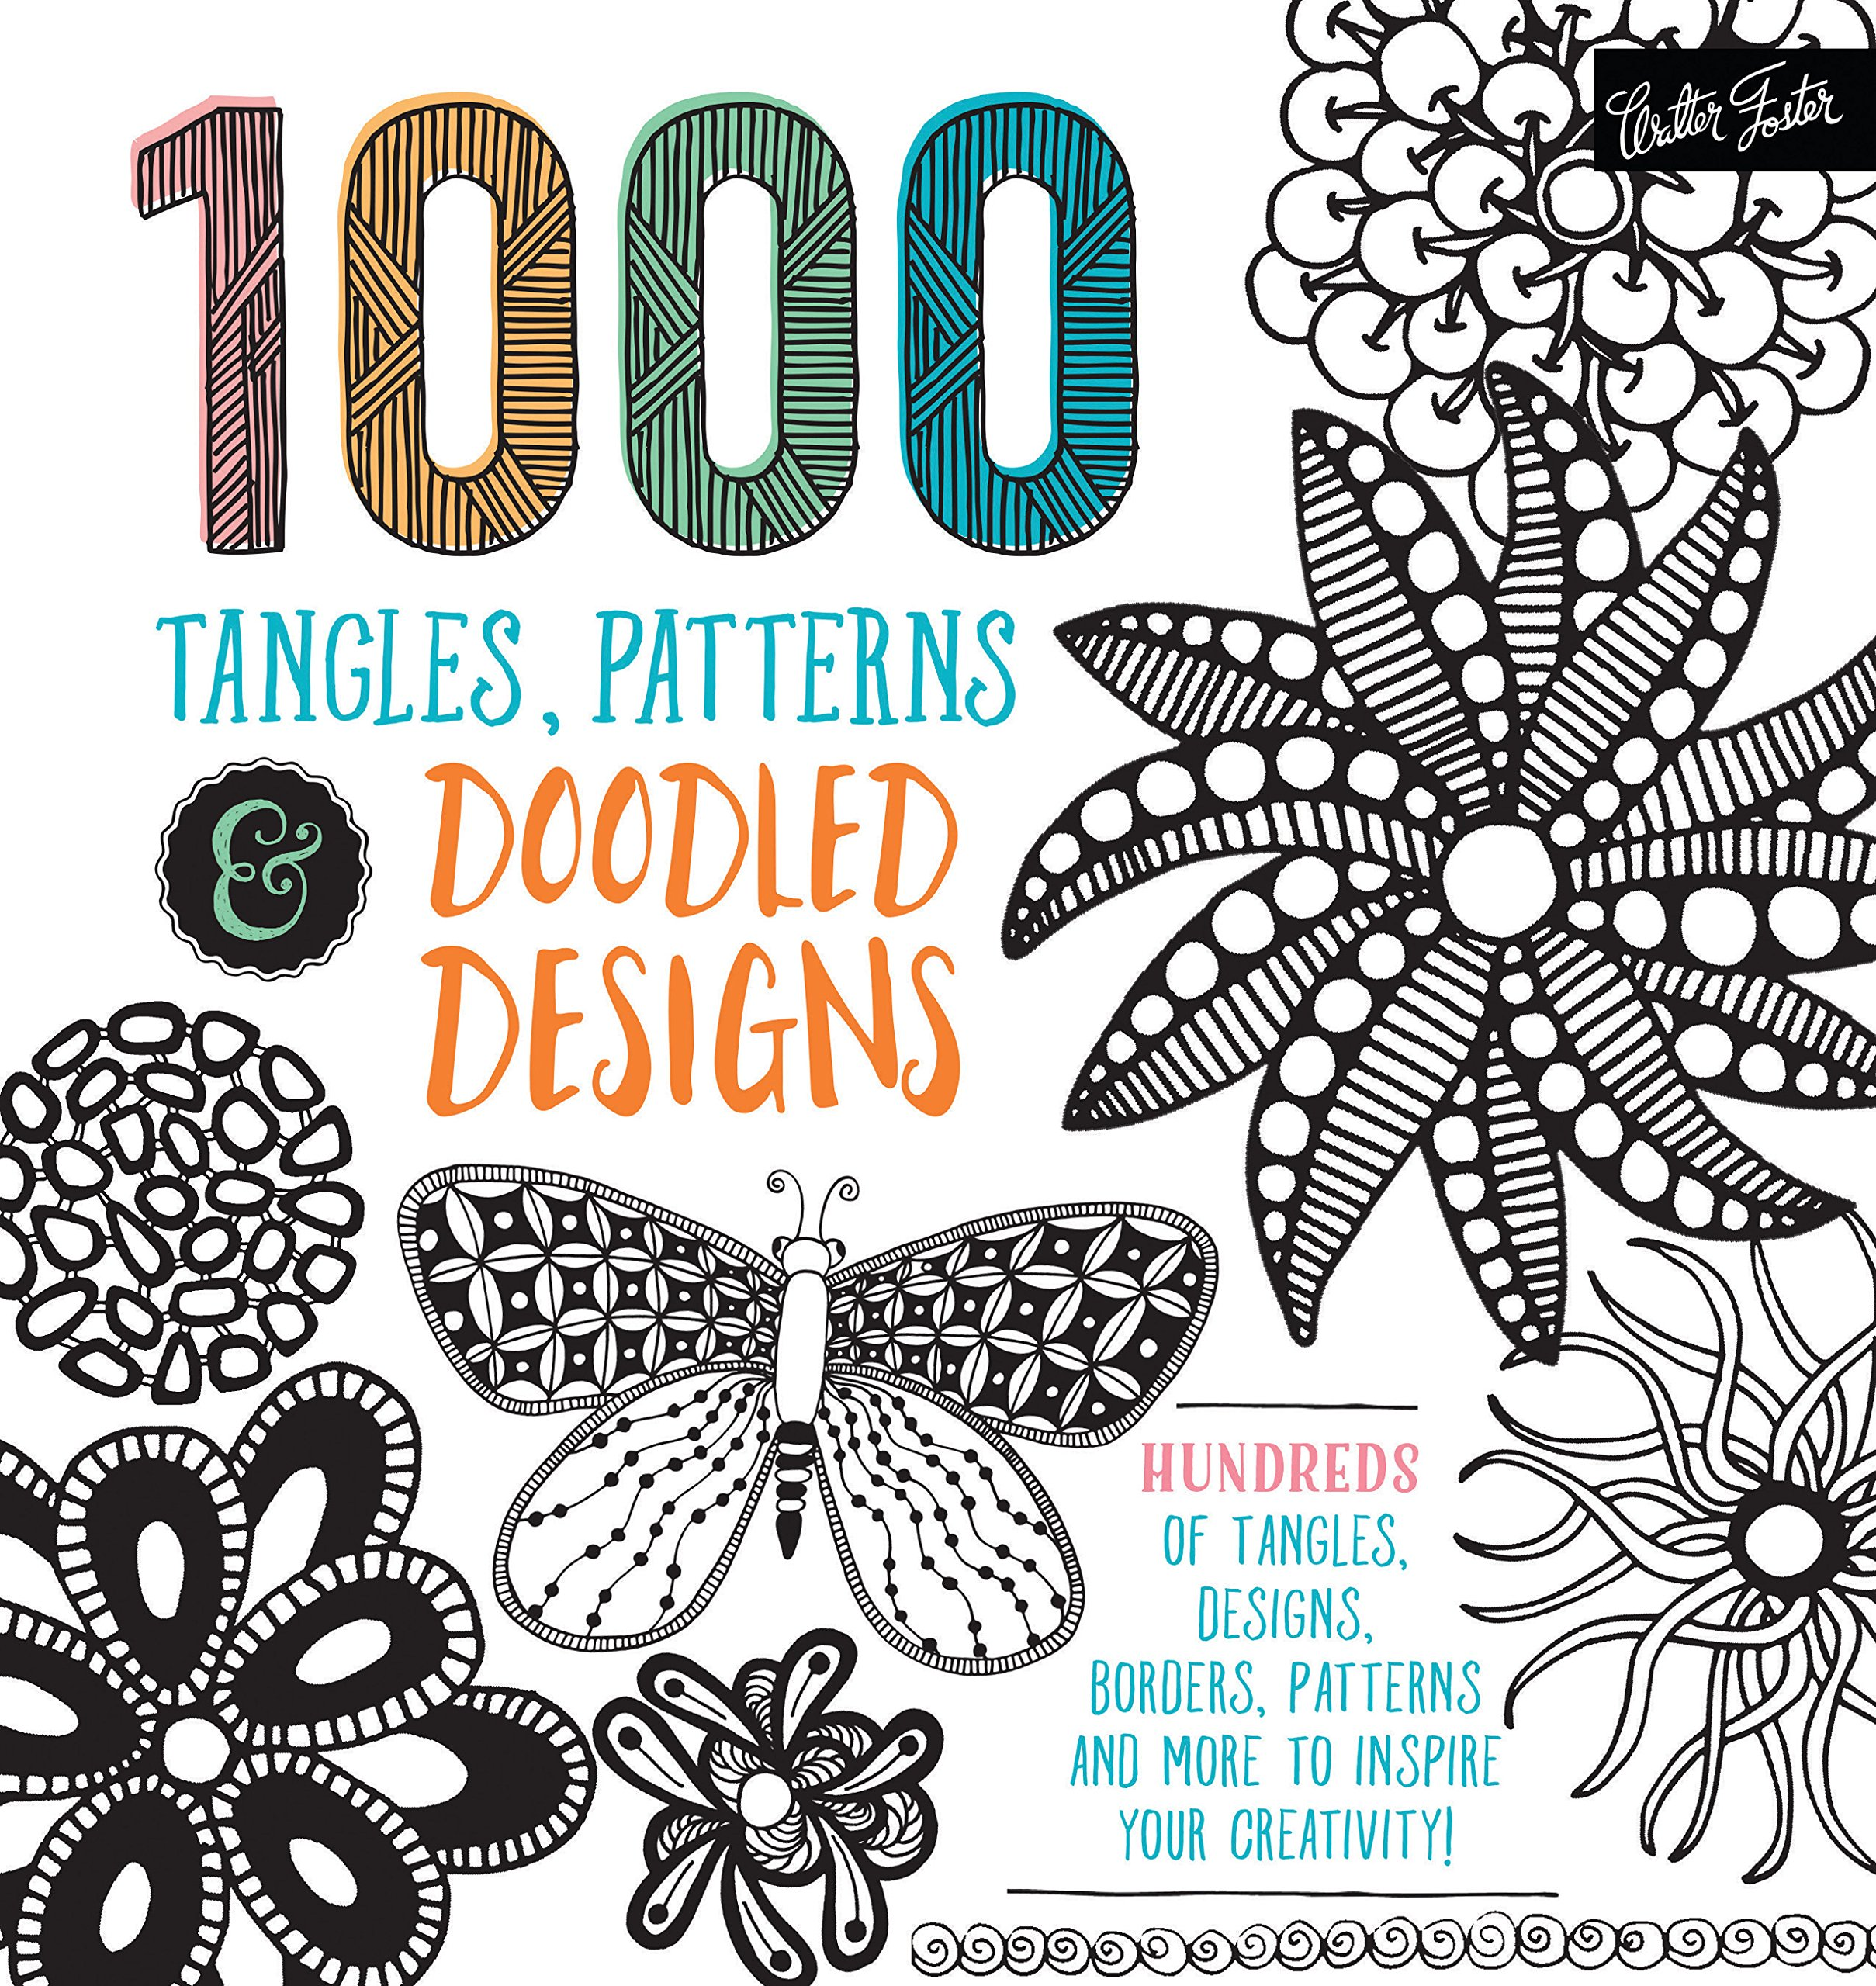 1,000 Tangles, Patterns & Doodled Designs: Hundreds of tangles, designs, borders, patterns and more to inspire your creativity! pdf